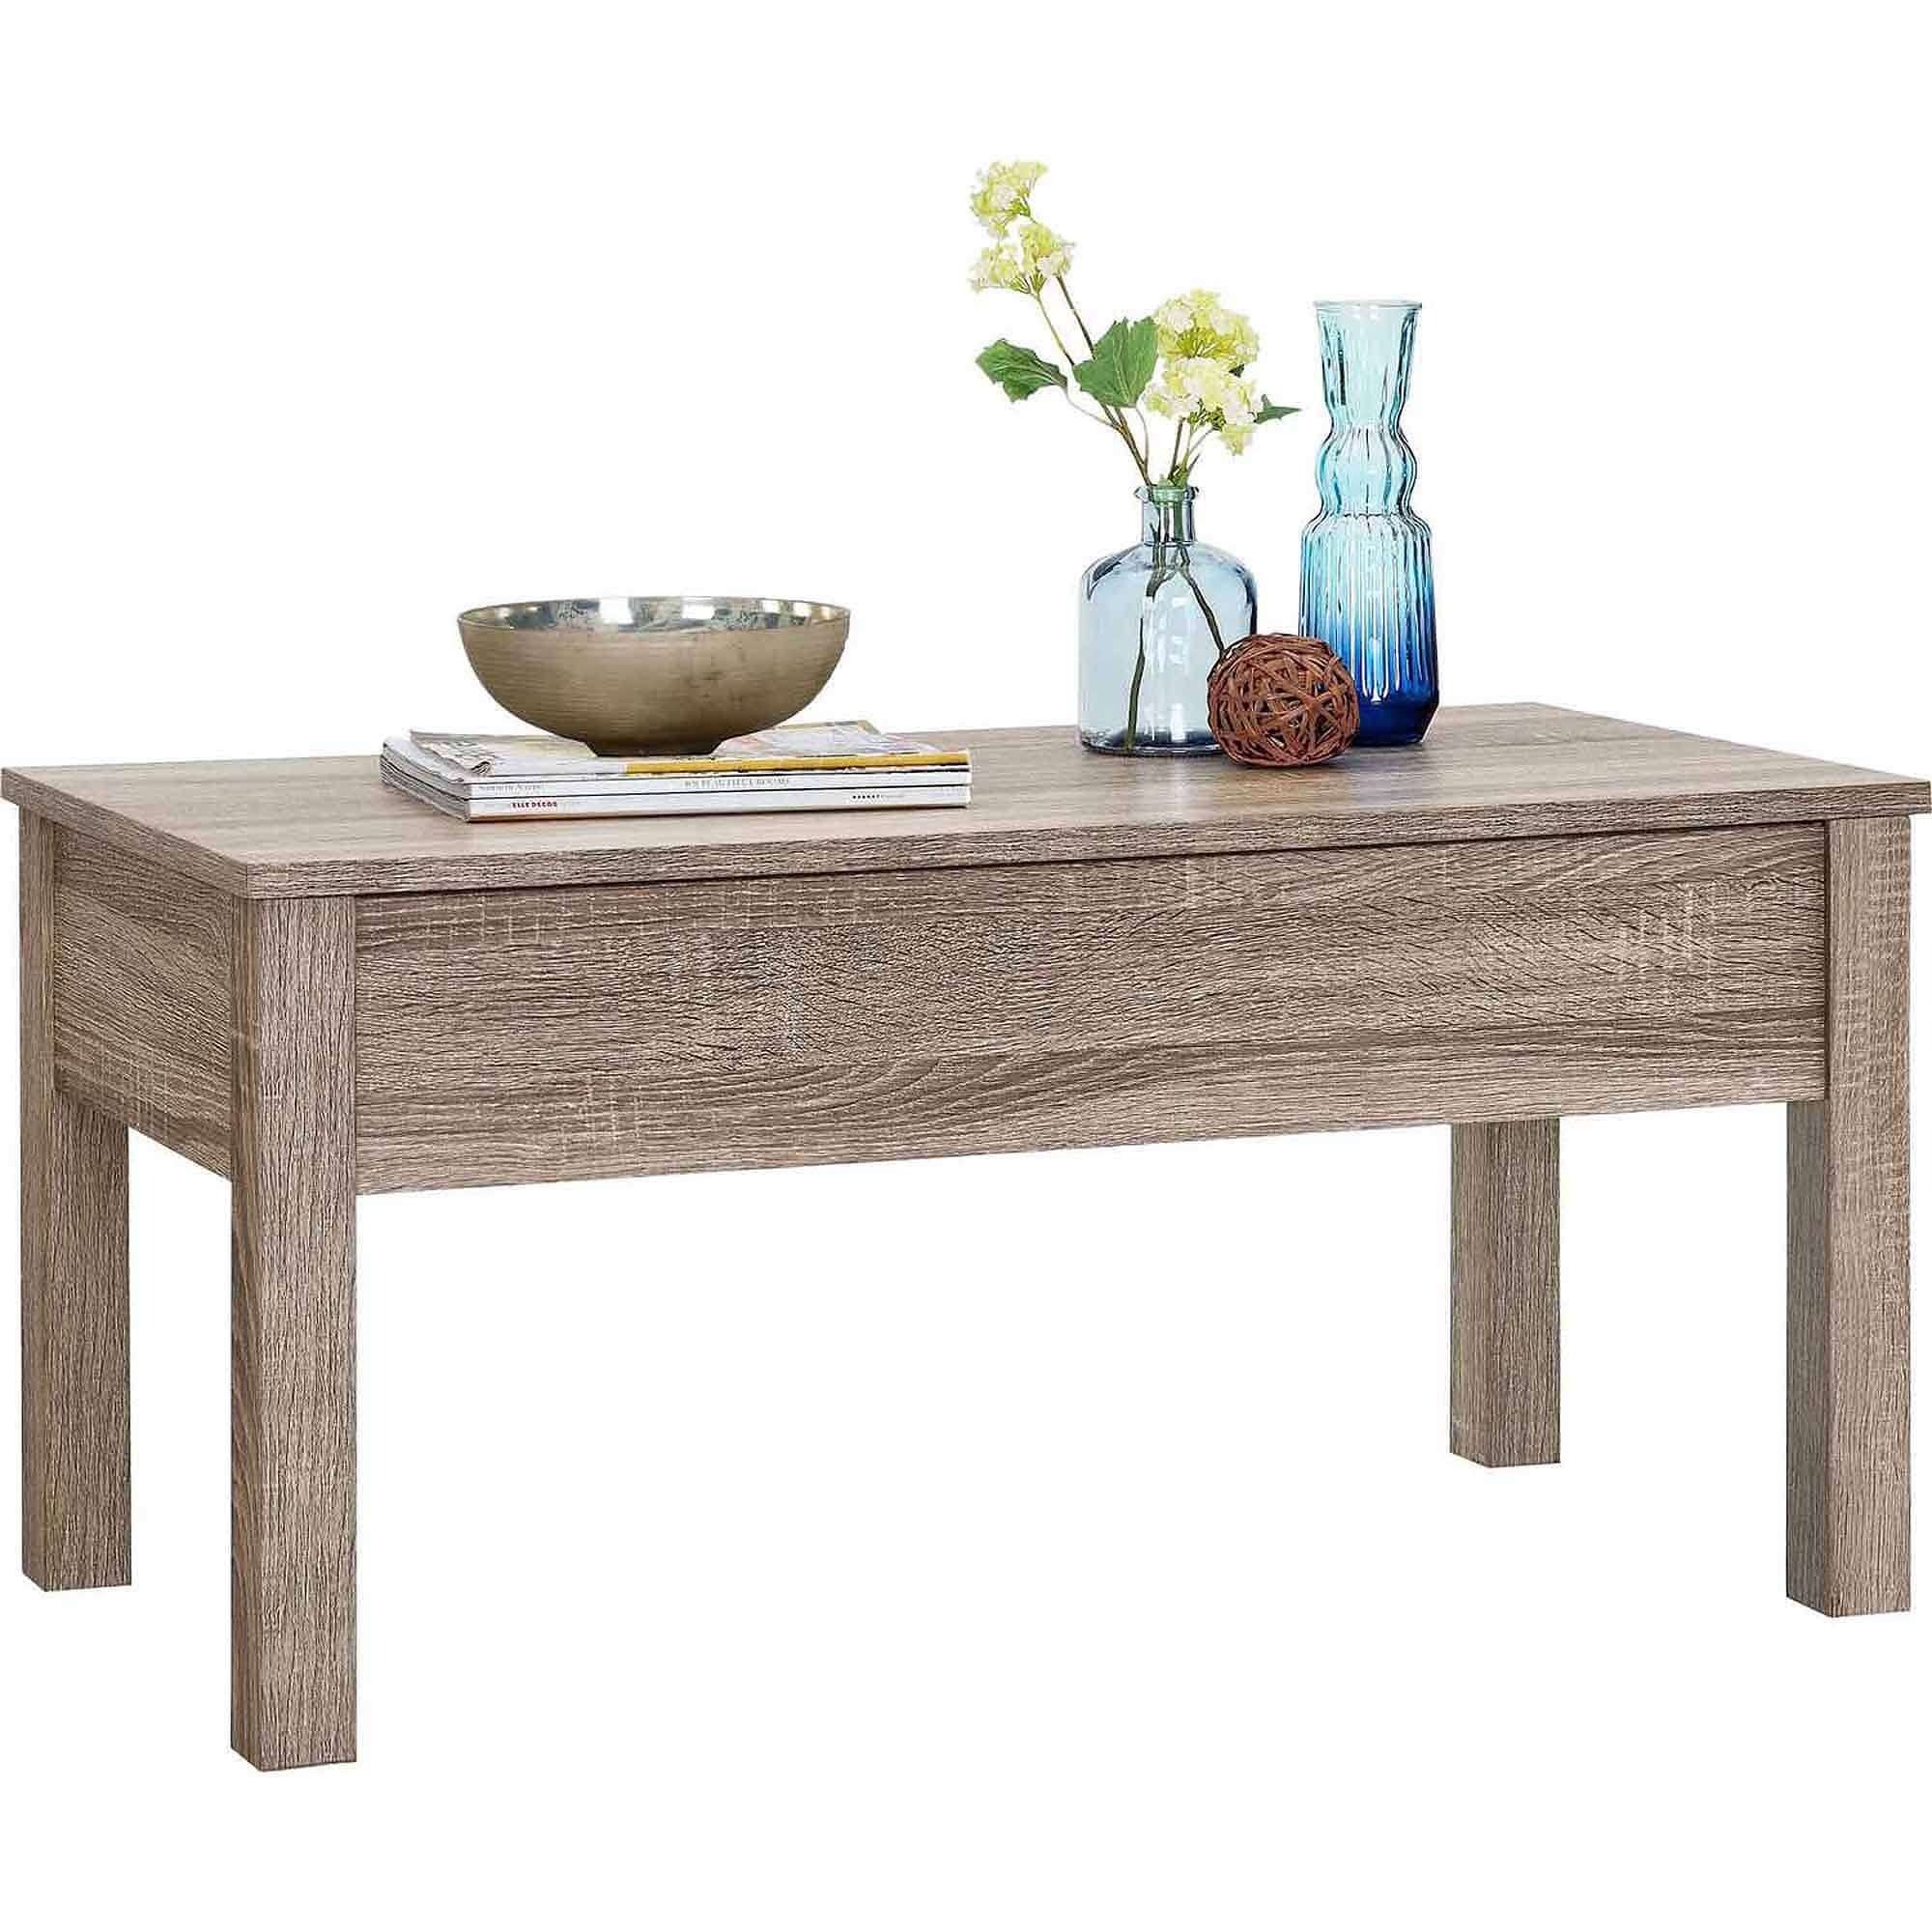 furniture beautiful collection coffee table better homes and gardens target mirrored accent white end tables lift top with storage threshold gold center weber charcoal grill side